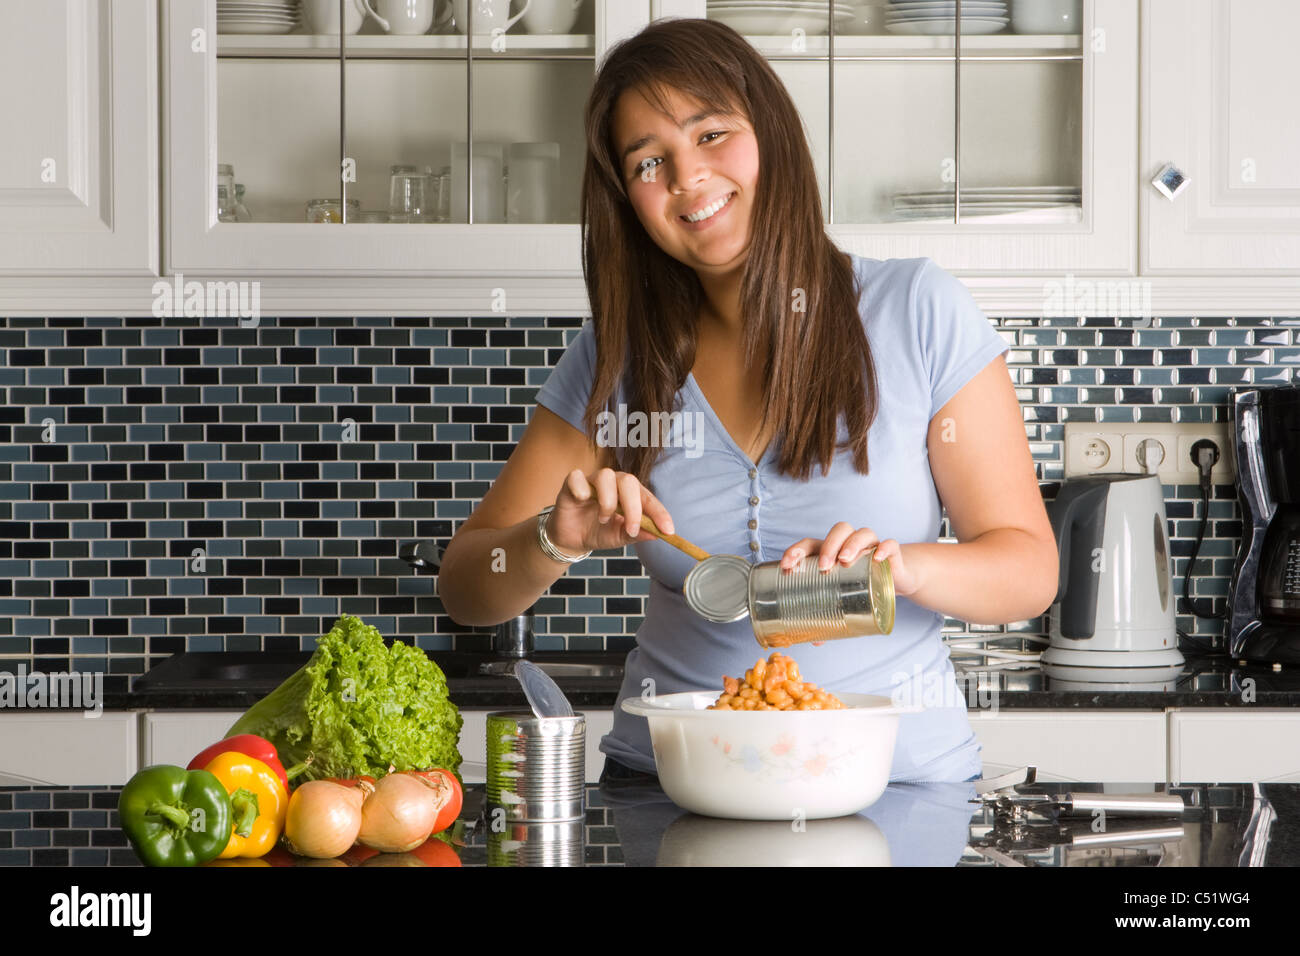 Young woman preparing food out of a can - Stock Image